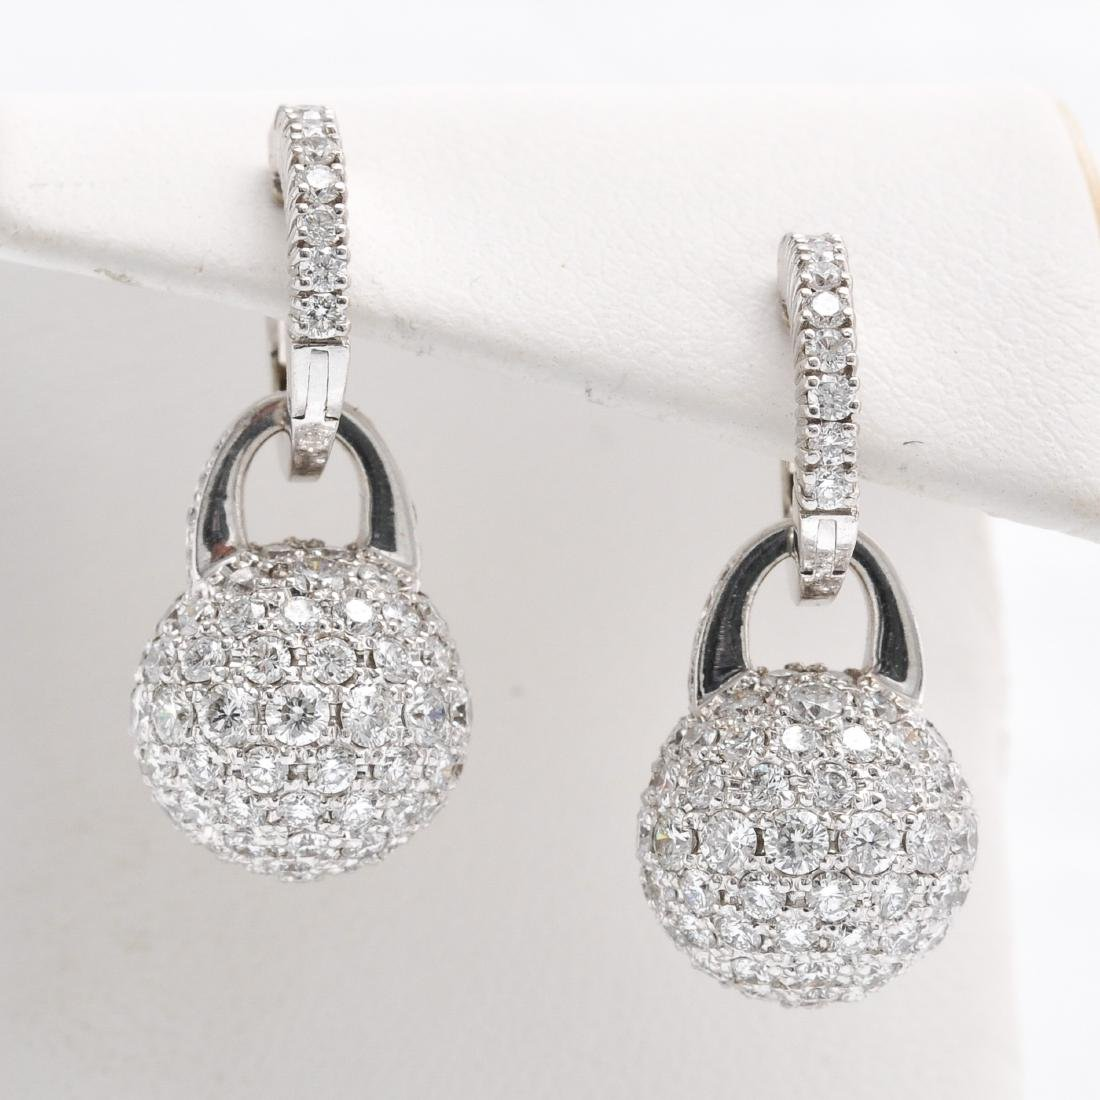 A Pair of 18KWG Pave Diamond Earring Approx. 4.28 CTW